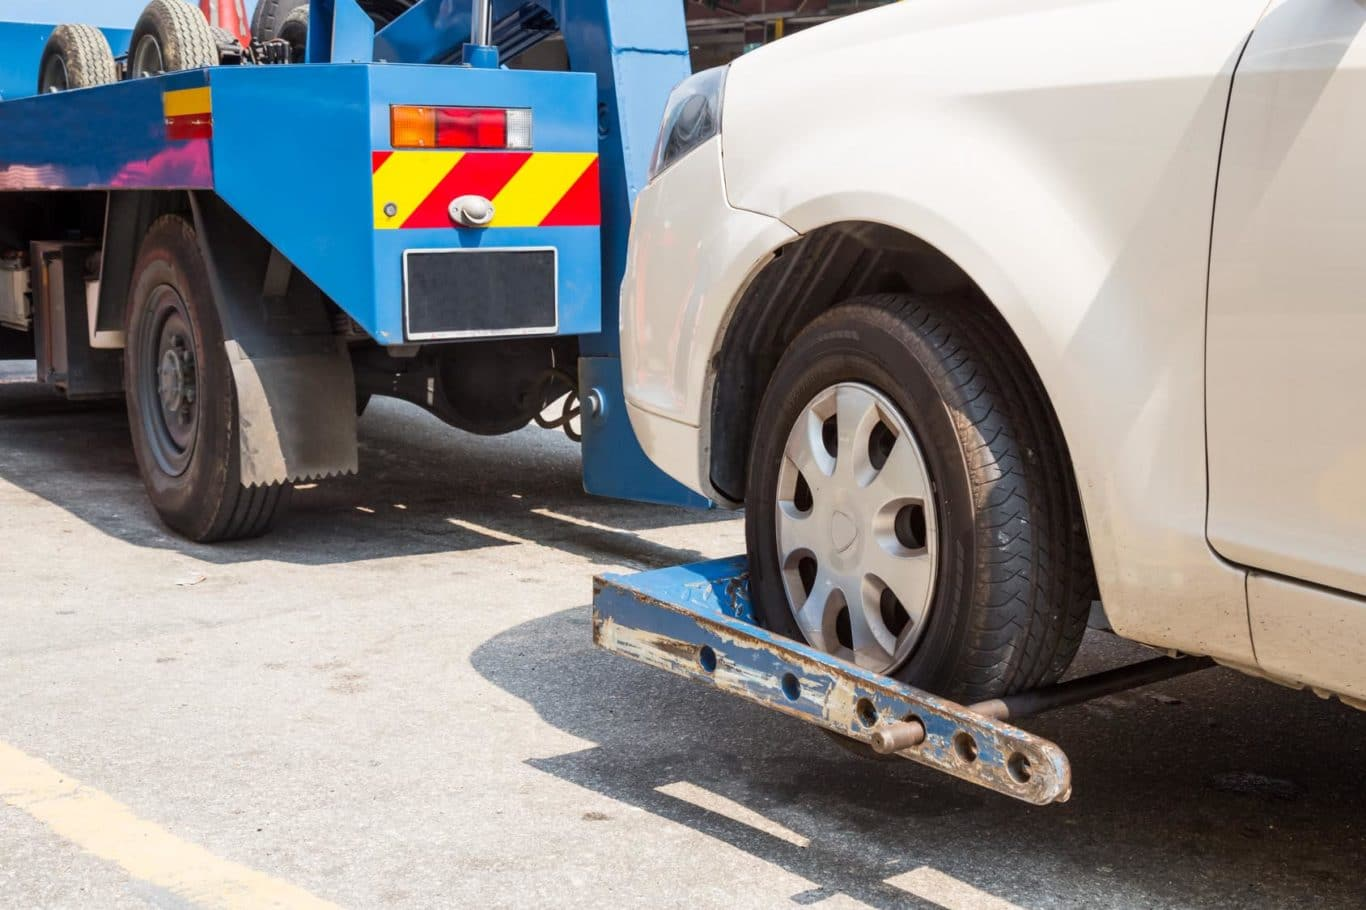 Kilberry expert Roadside Assistance services